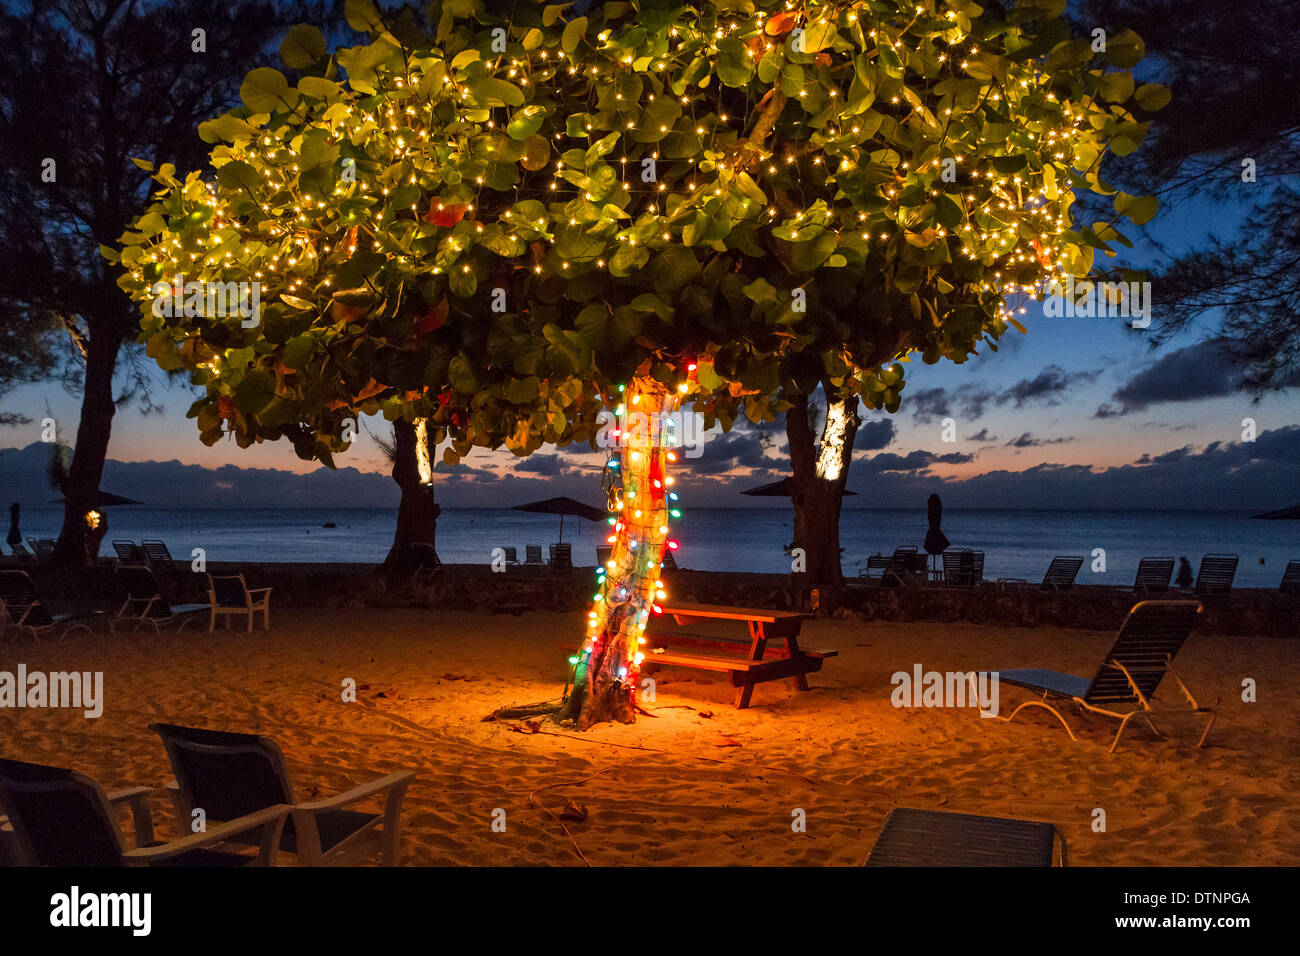 A tree with Christmas lights at dusk on Seven Seas Beach in Grand Cayman - Stock Image